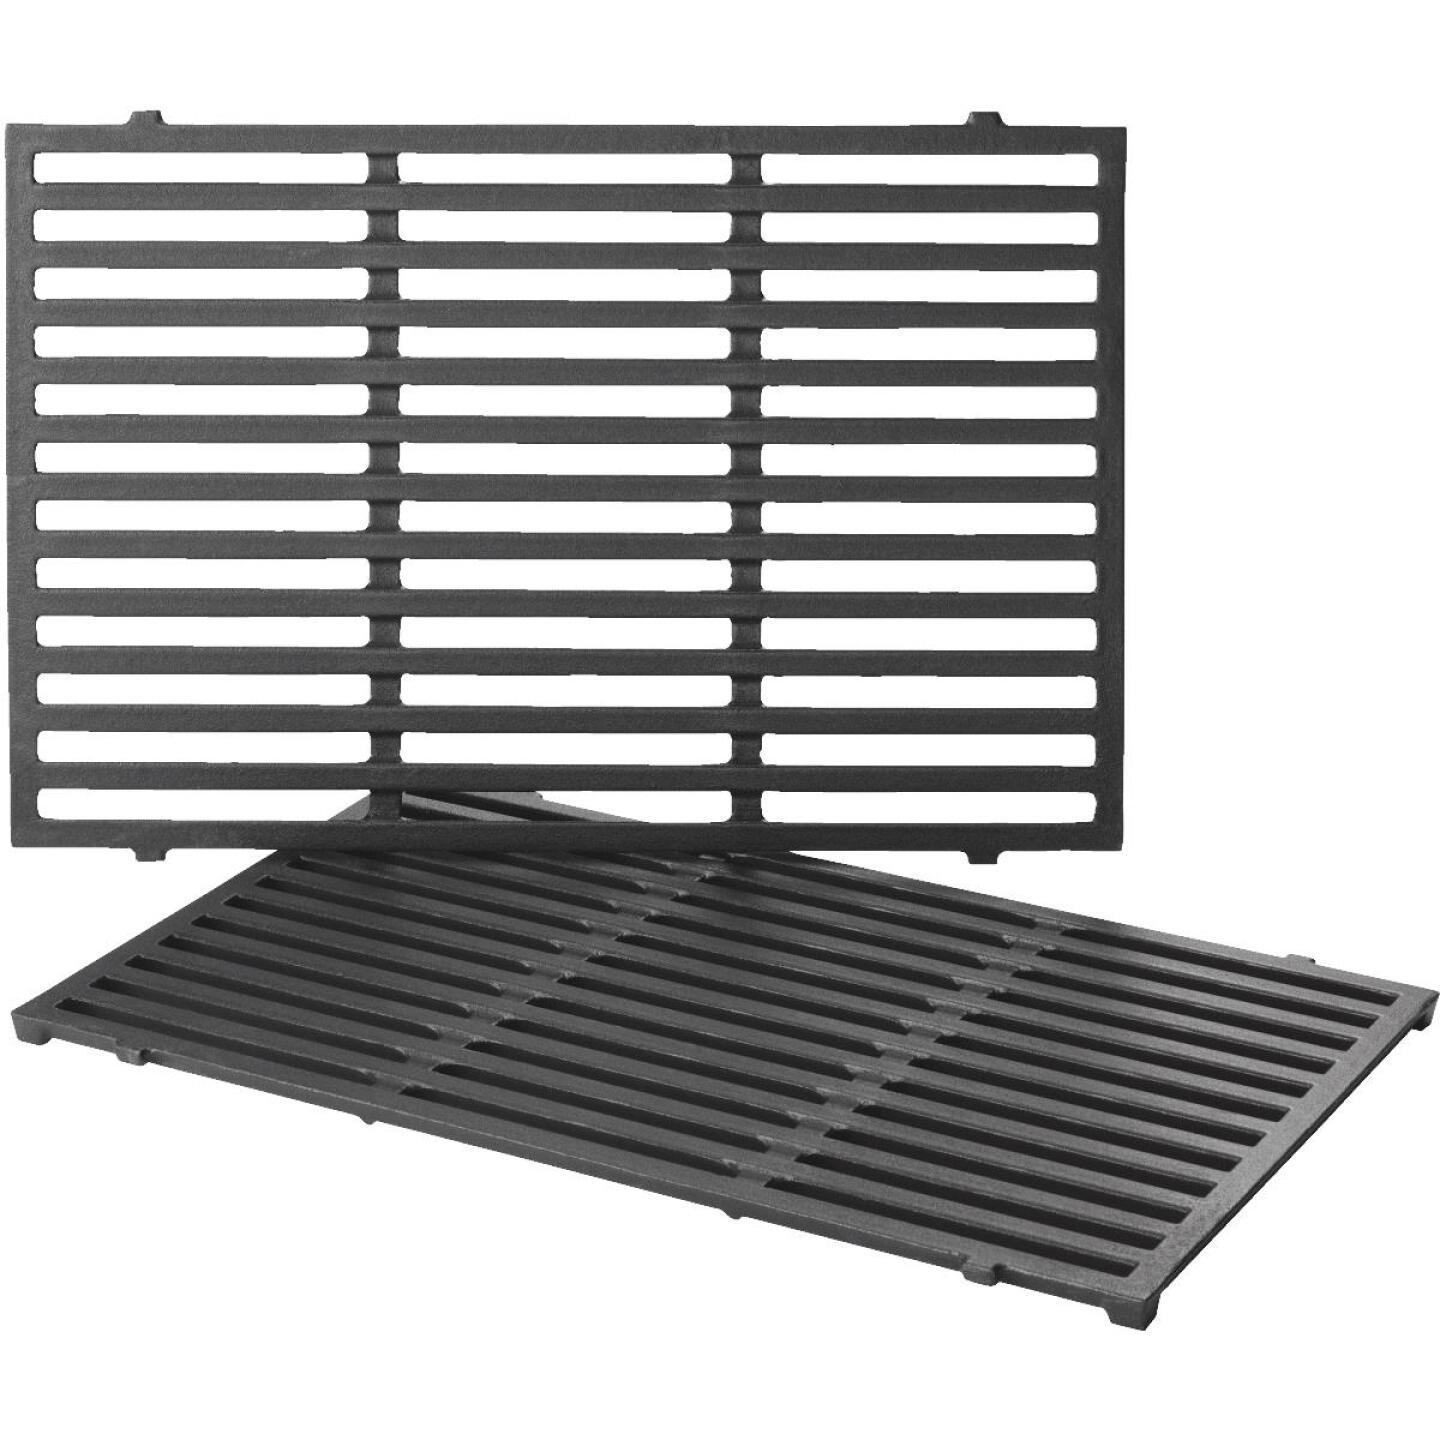 Weber Spirit 300 17.5 In. W. x 11.9 In. D. Porcelain Enameled Cast Iron Grill Grate Image 1